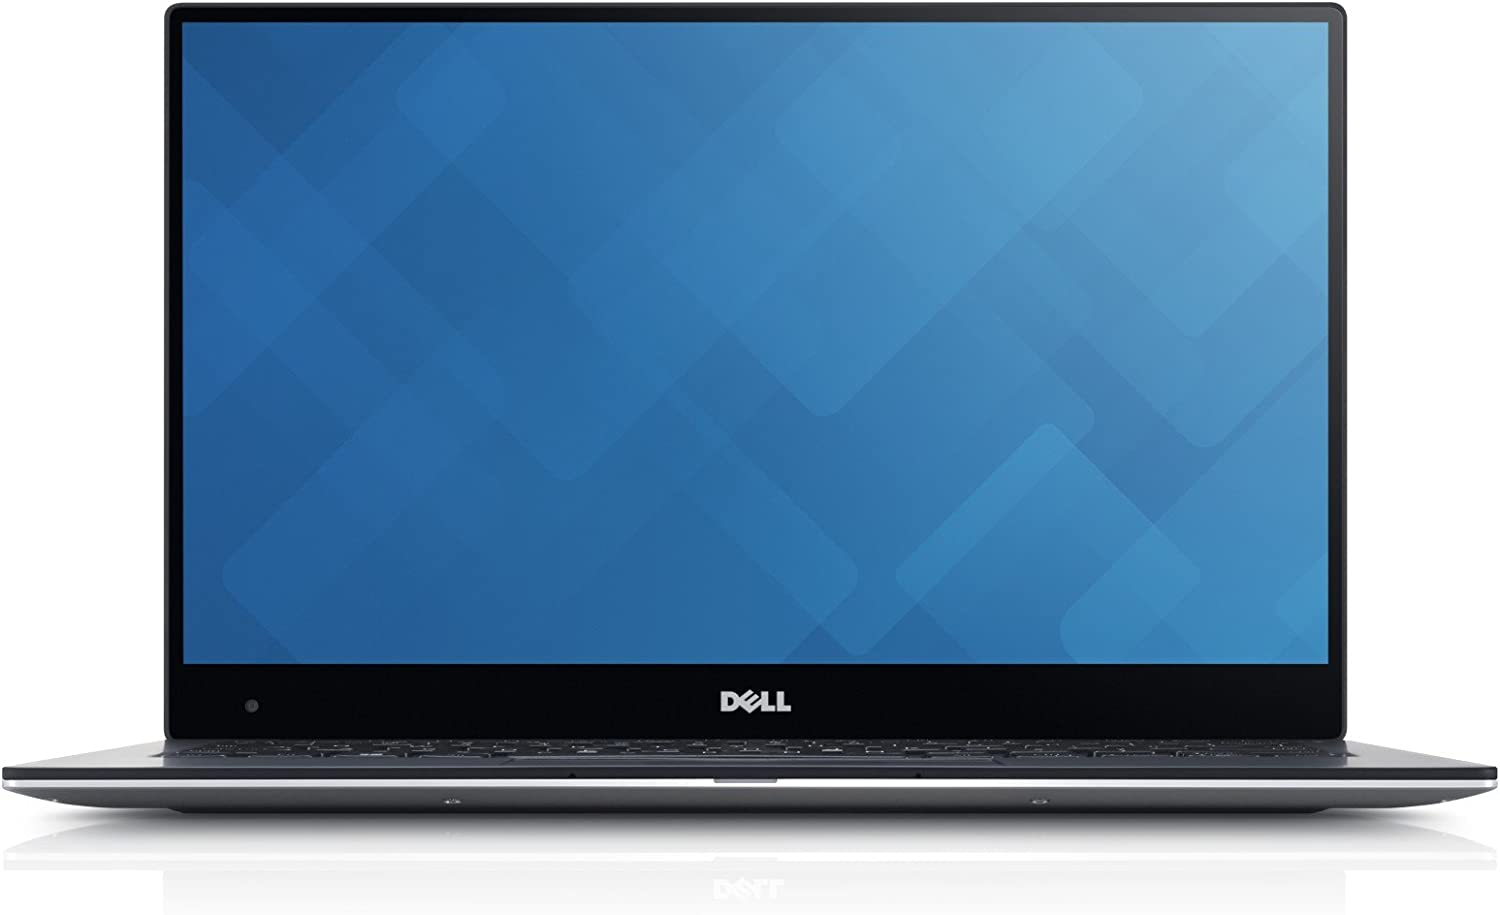 Dell XPS 13 9360 13.3in Laptop QHD+ Touchscreen 7th Gen Intel Core i7-7560U, 16GB RAM, 1TB NVME SSD Machined Aluminum Display Silver Win 10 (Renewed)